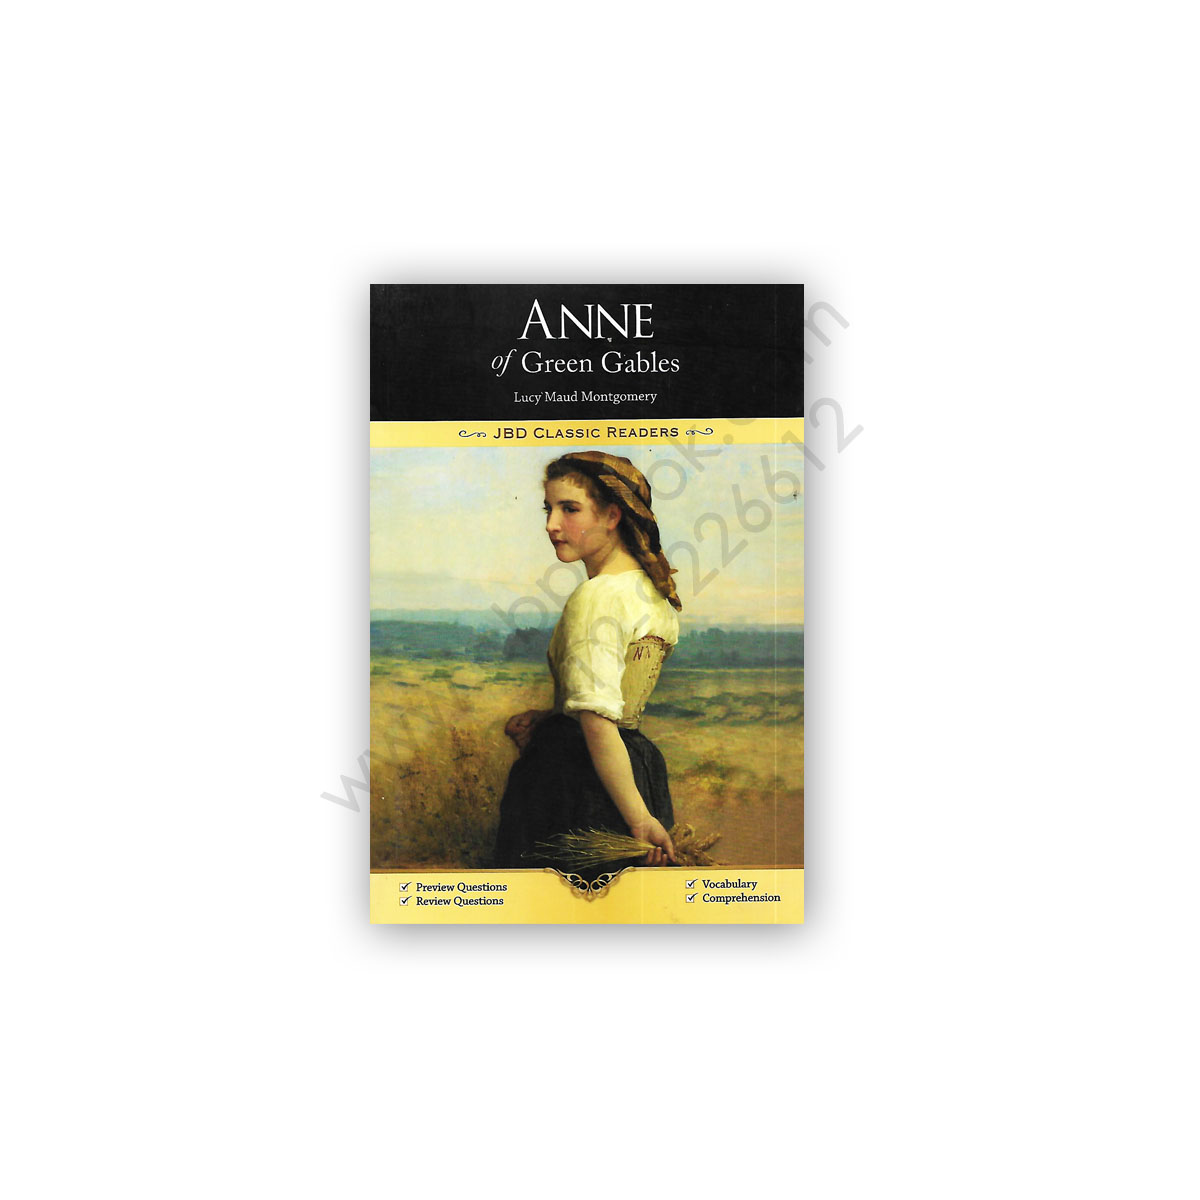 anne of green gables by lucy maud montgomery - jbd press